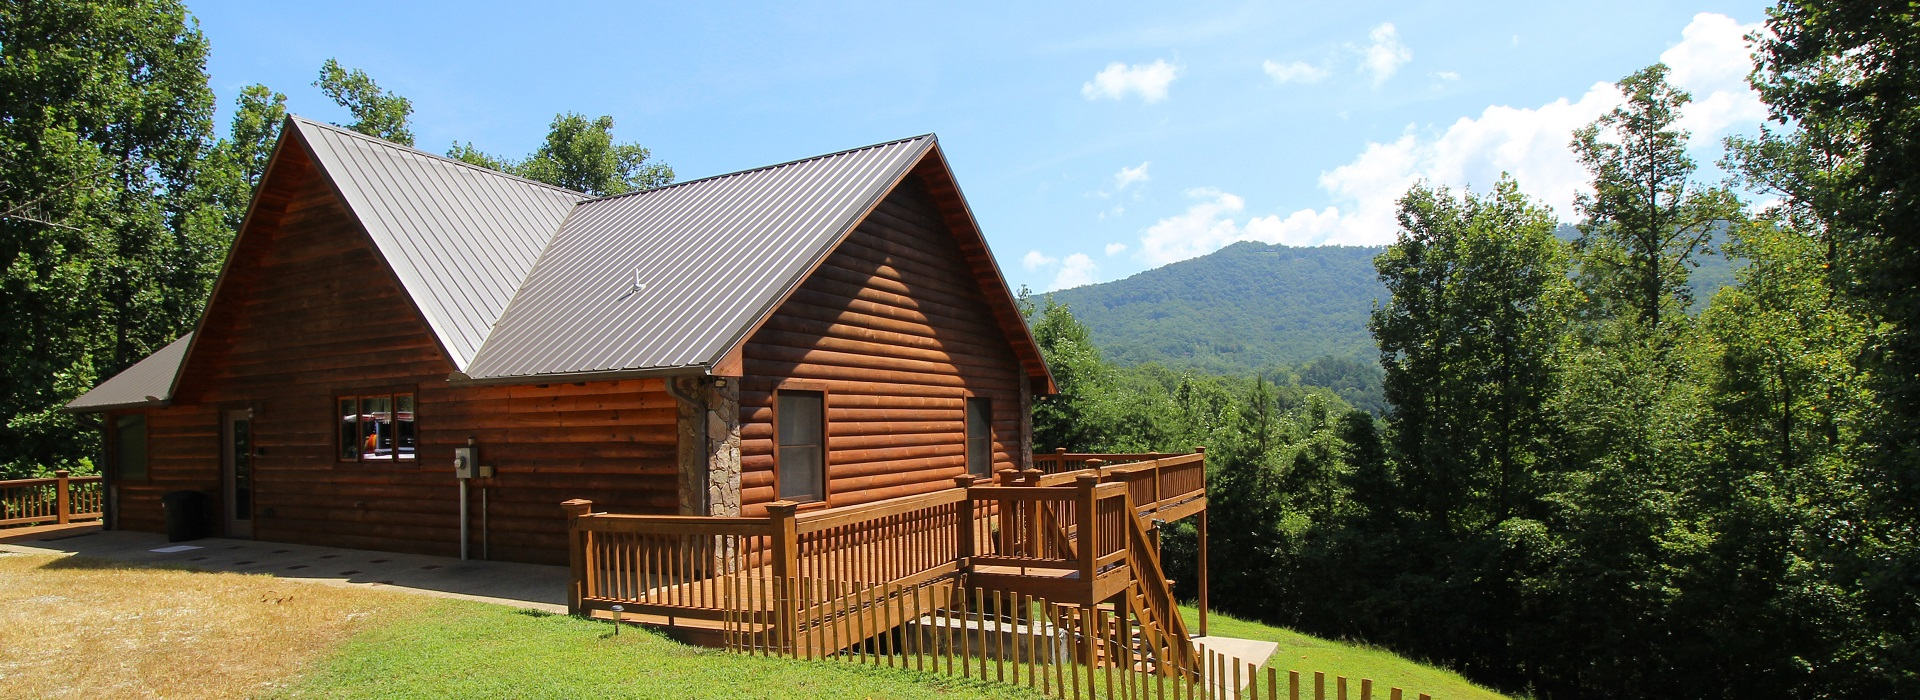 cabin mountain rock for img cabins the carolina rent room north type esmeralda chimney inn at nc rentals